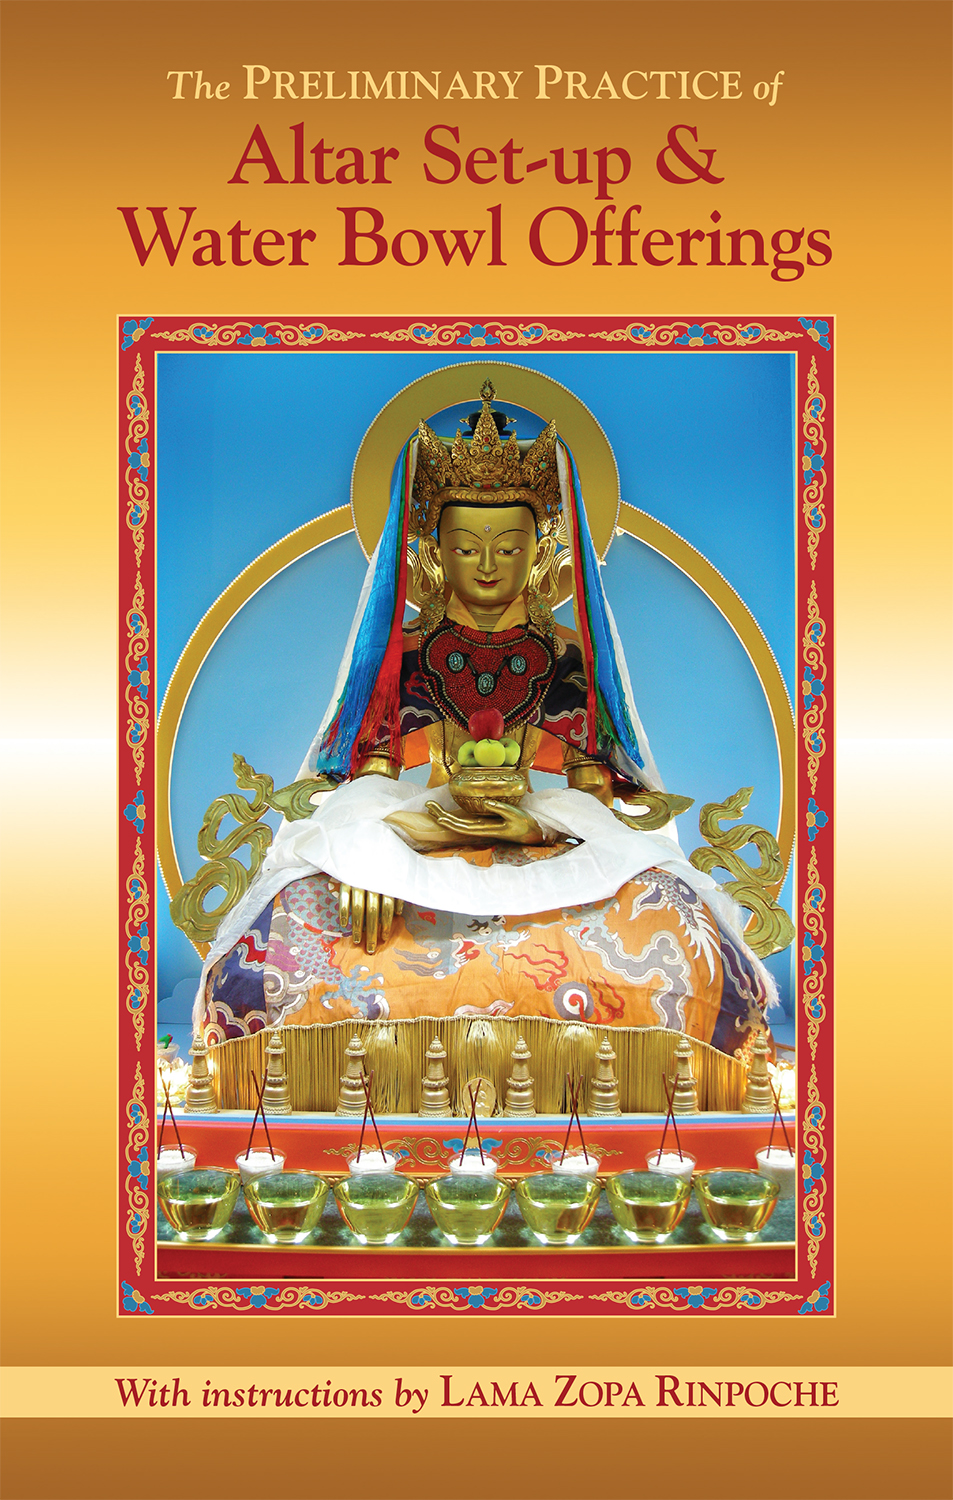 Available in Print! The Preliminary Practice of Altar Set-up & Water Bowl Offerings